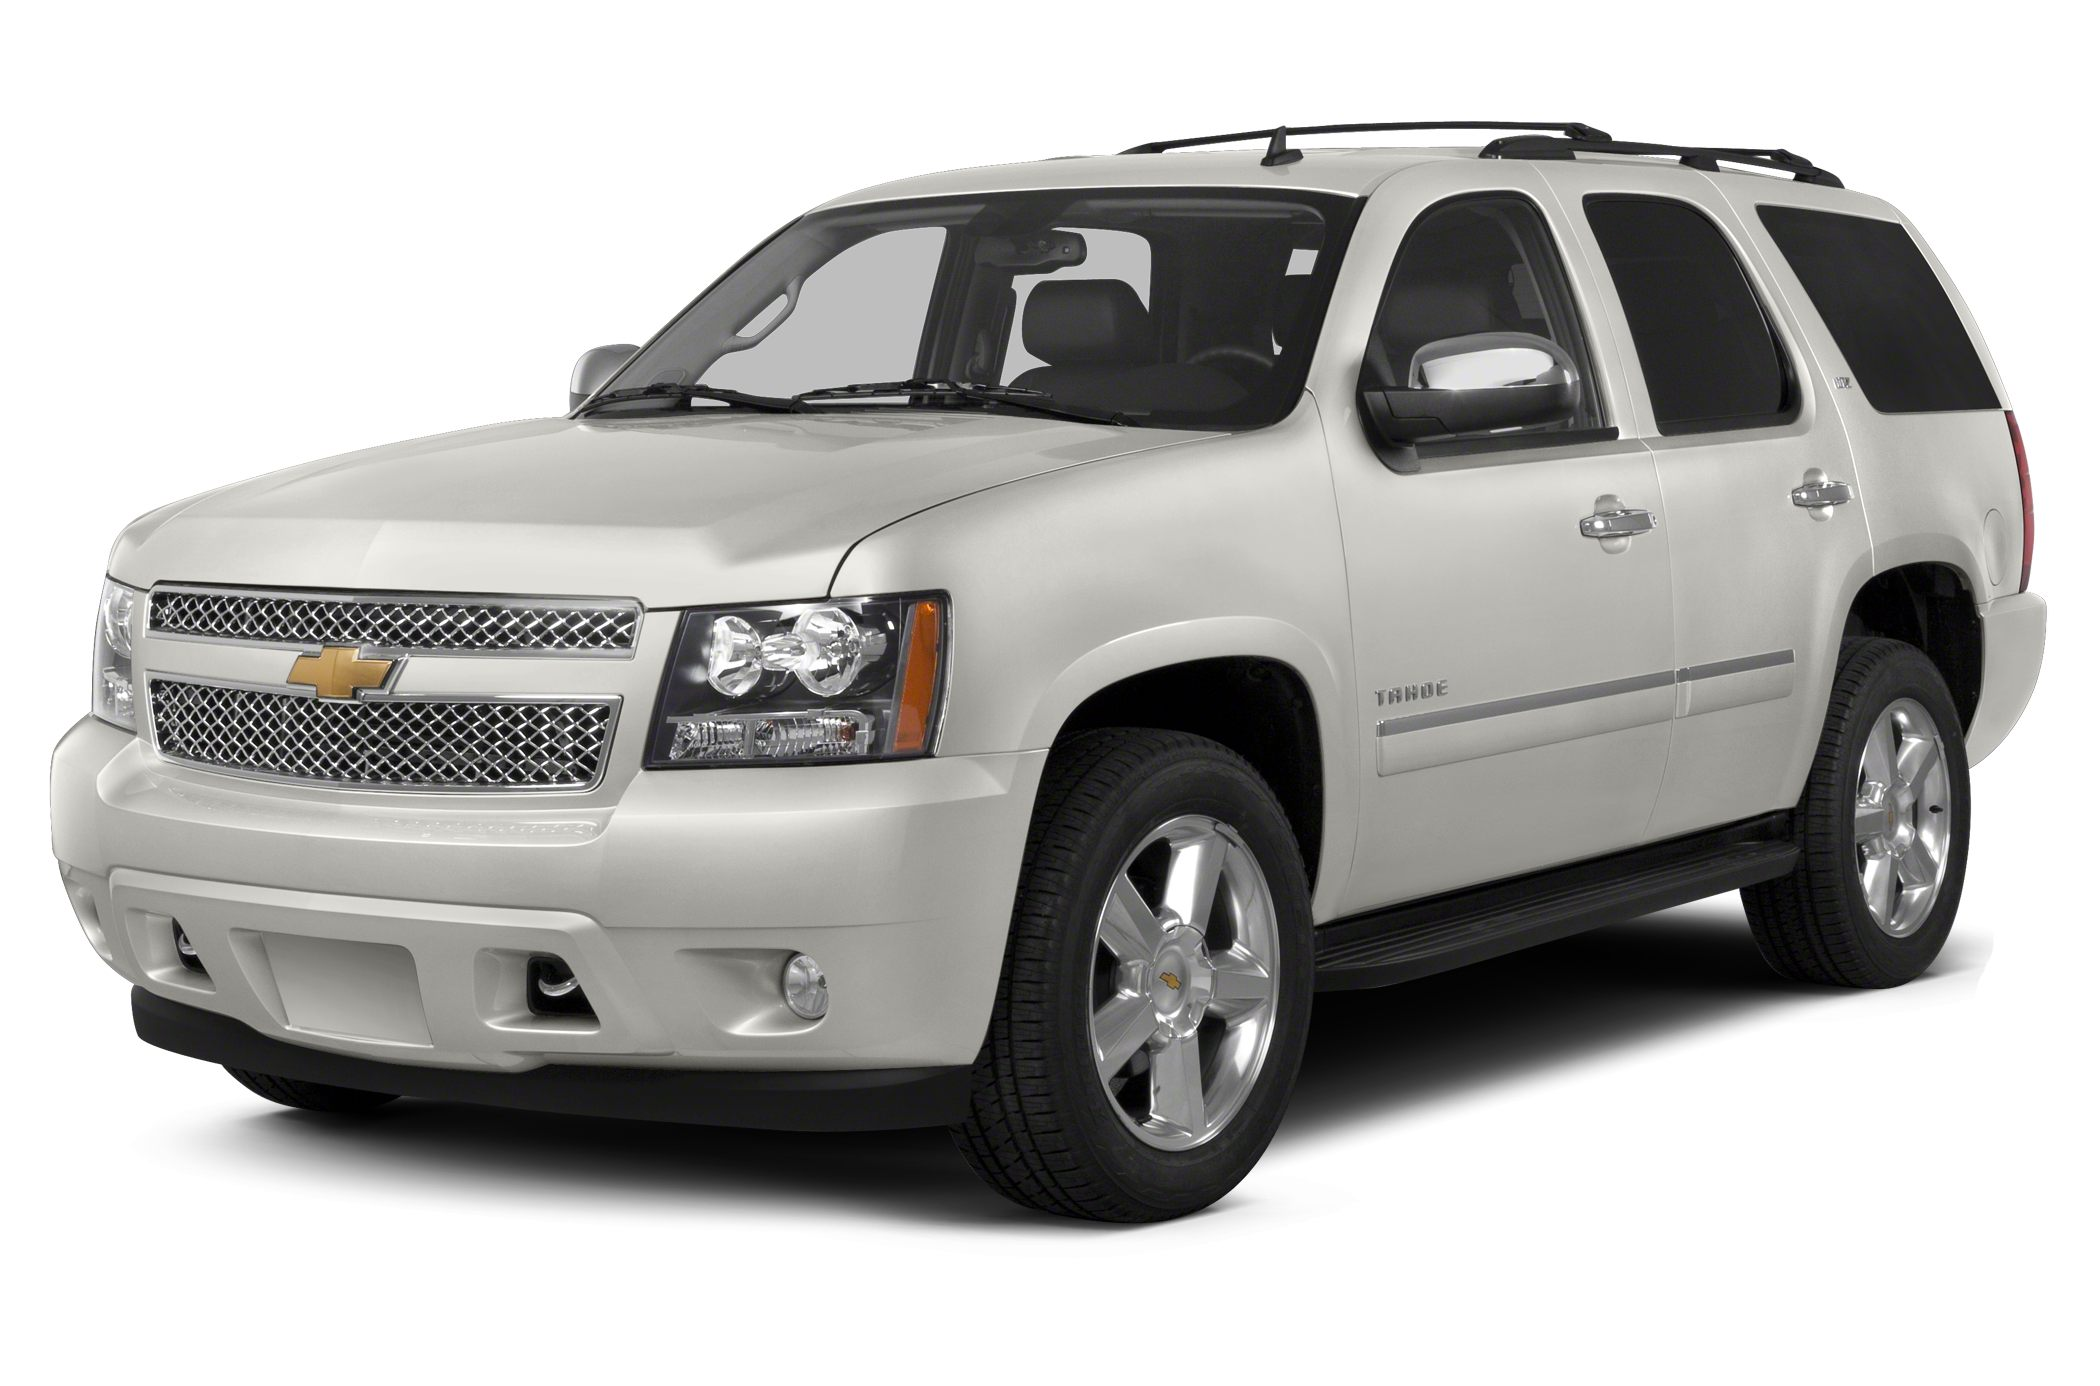 2013 Chevrolet Tahoe LTZ Miles 39565Color UNSPECIFIED Stock 1GNSCCE07DR337753 VIN 1GNSCCE07D